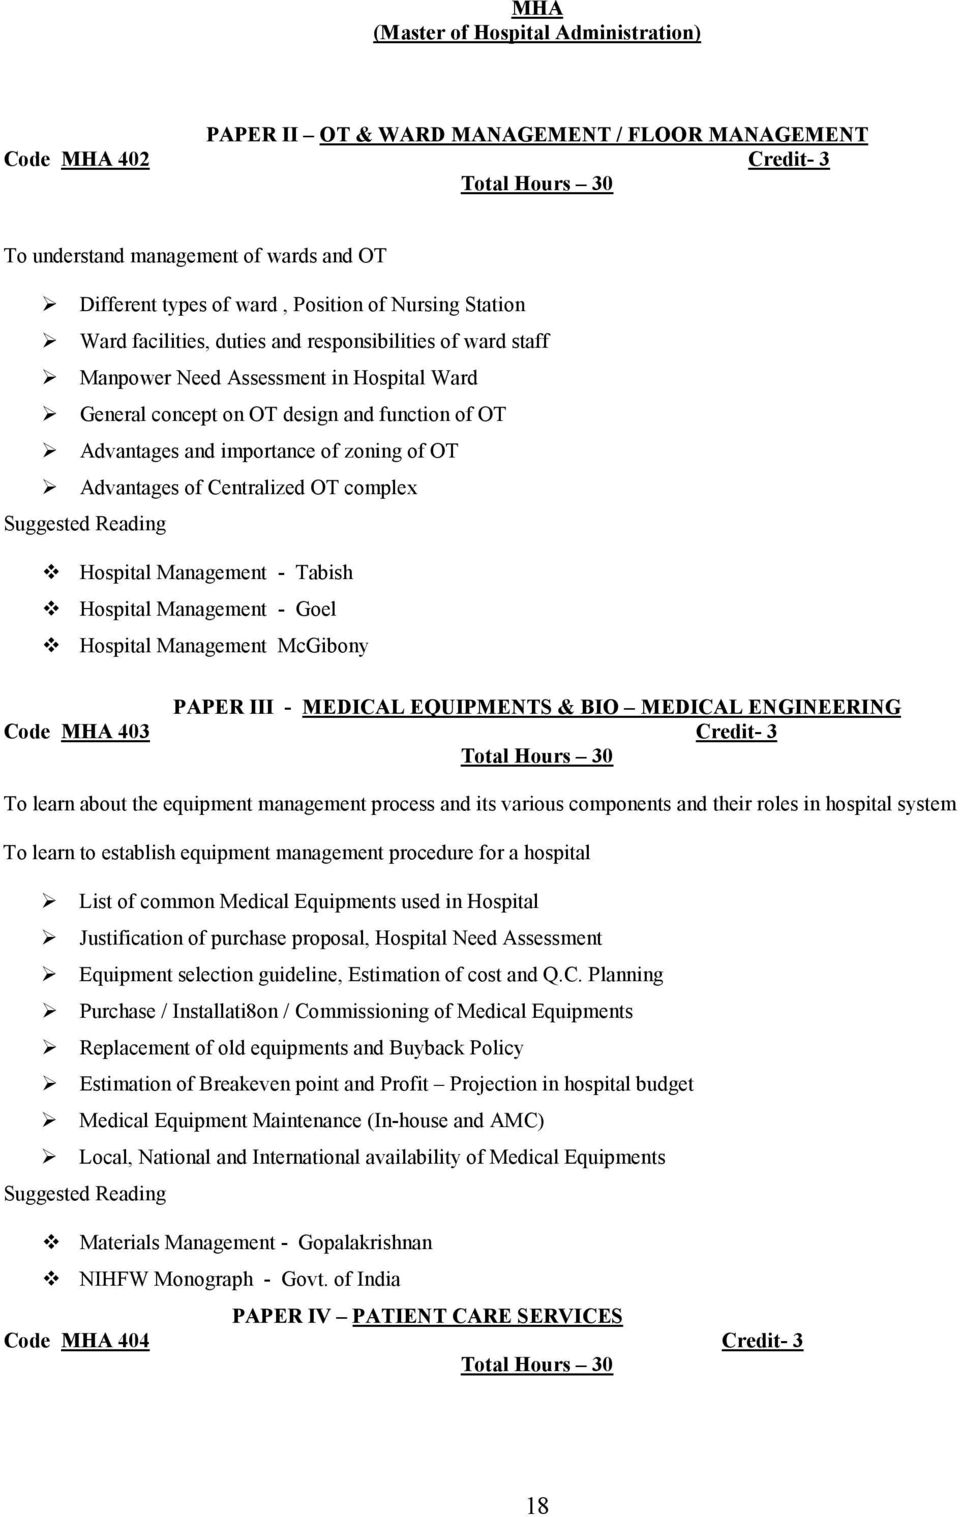 Hospital Management - Tabish Hospital Management - Goel Hospital Management McGibony PAPER III - MEDICAL EQUIPMENTS & BIO MEDICAL ENGINEERING Code MHA 403 Credit- 3 To learn about the equipment